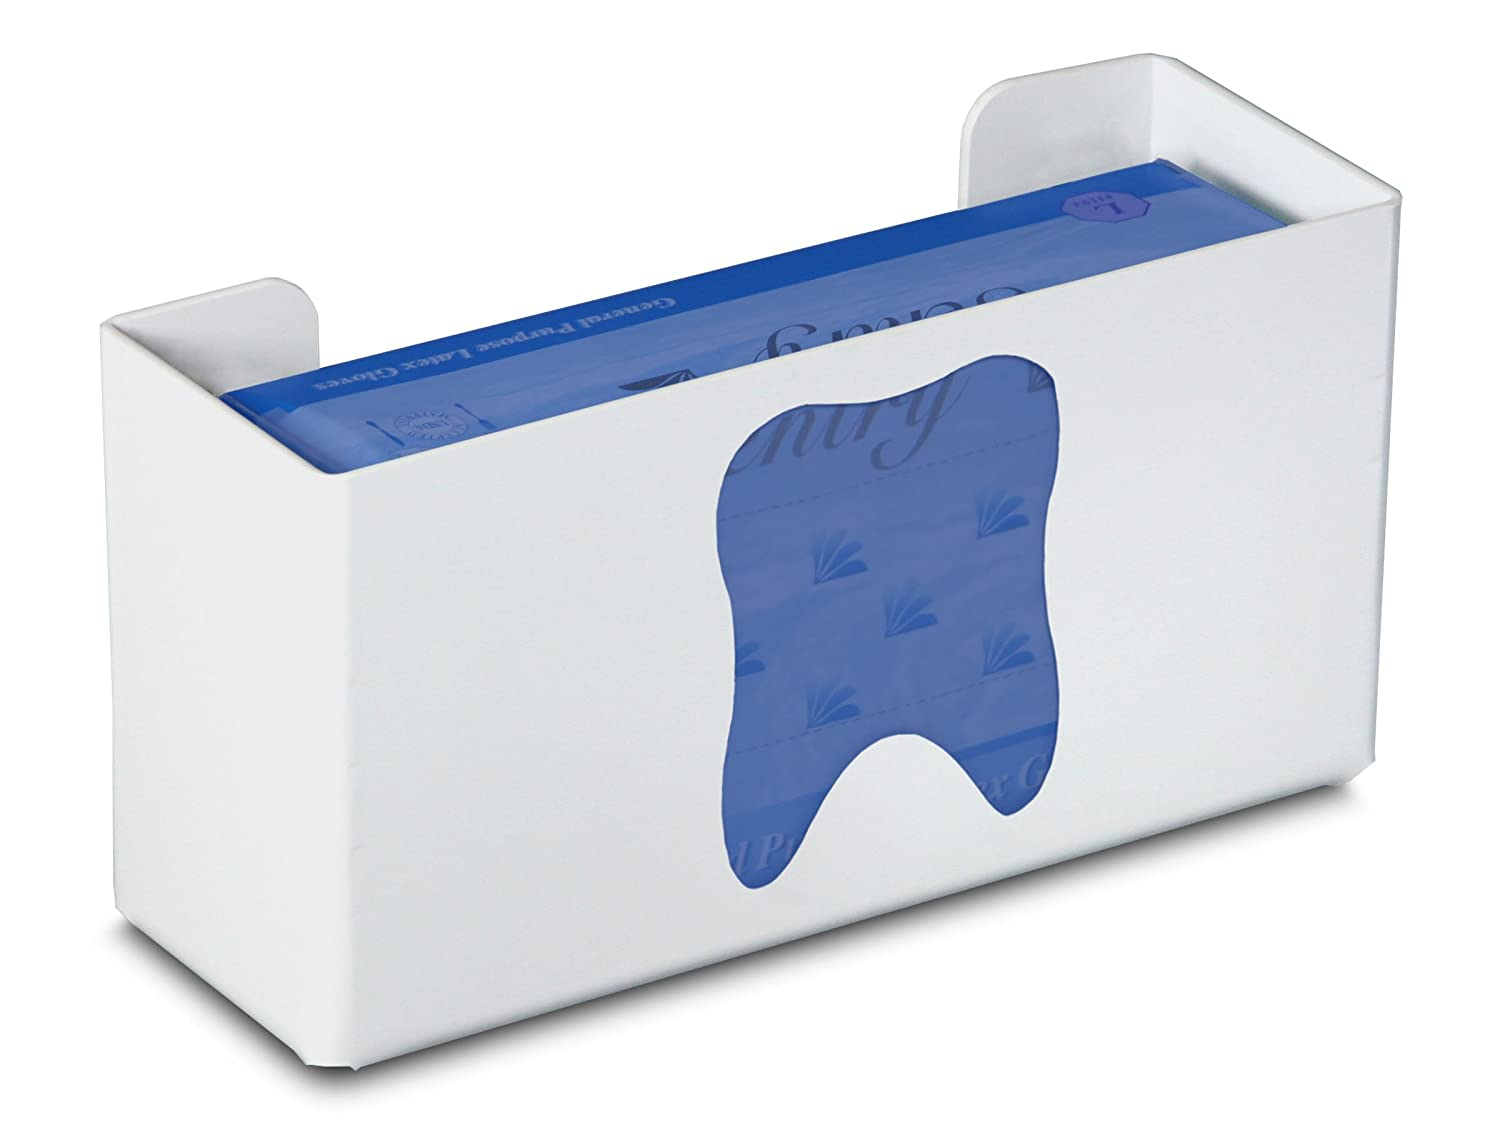 TrippNT 51053 Priced Right Single Glove Box Holder with Tooth, 11' Width x 6' Height x 4' Depth 11 Width x 6 Height x 4 Depth